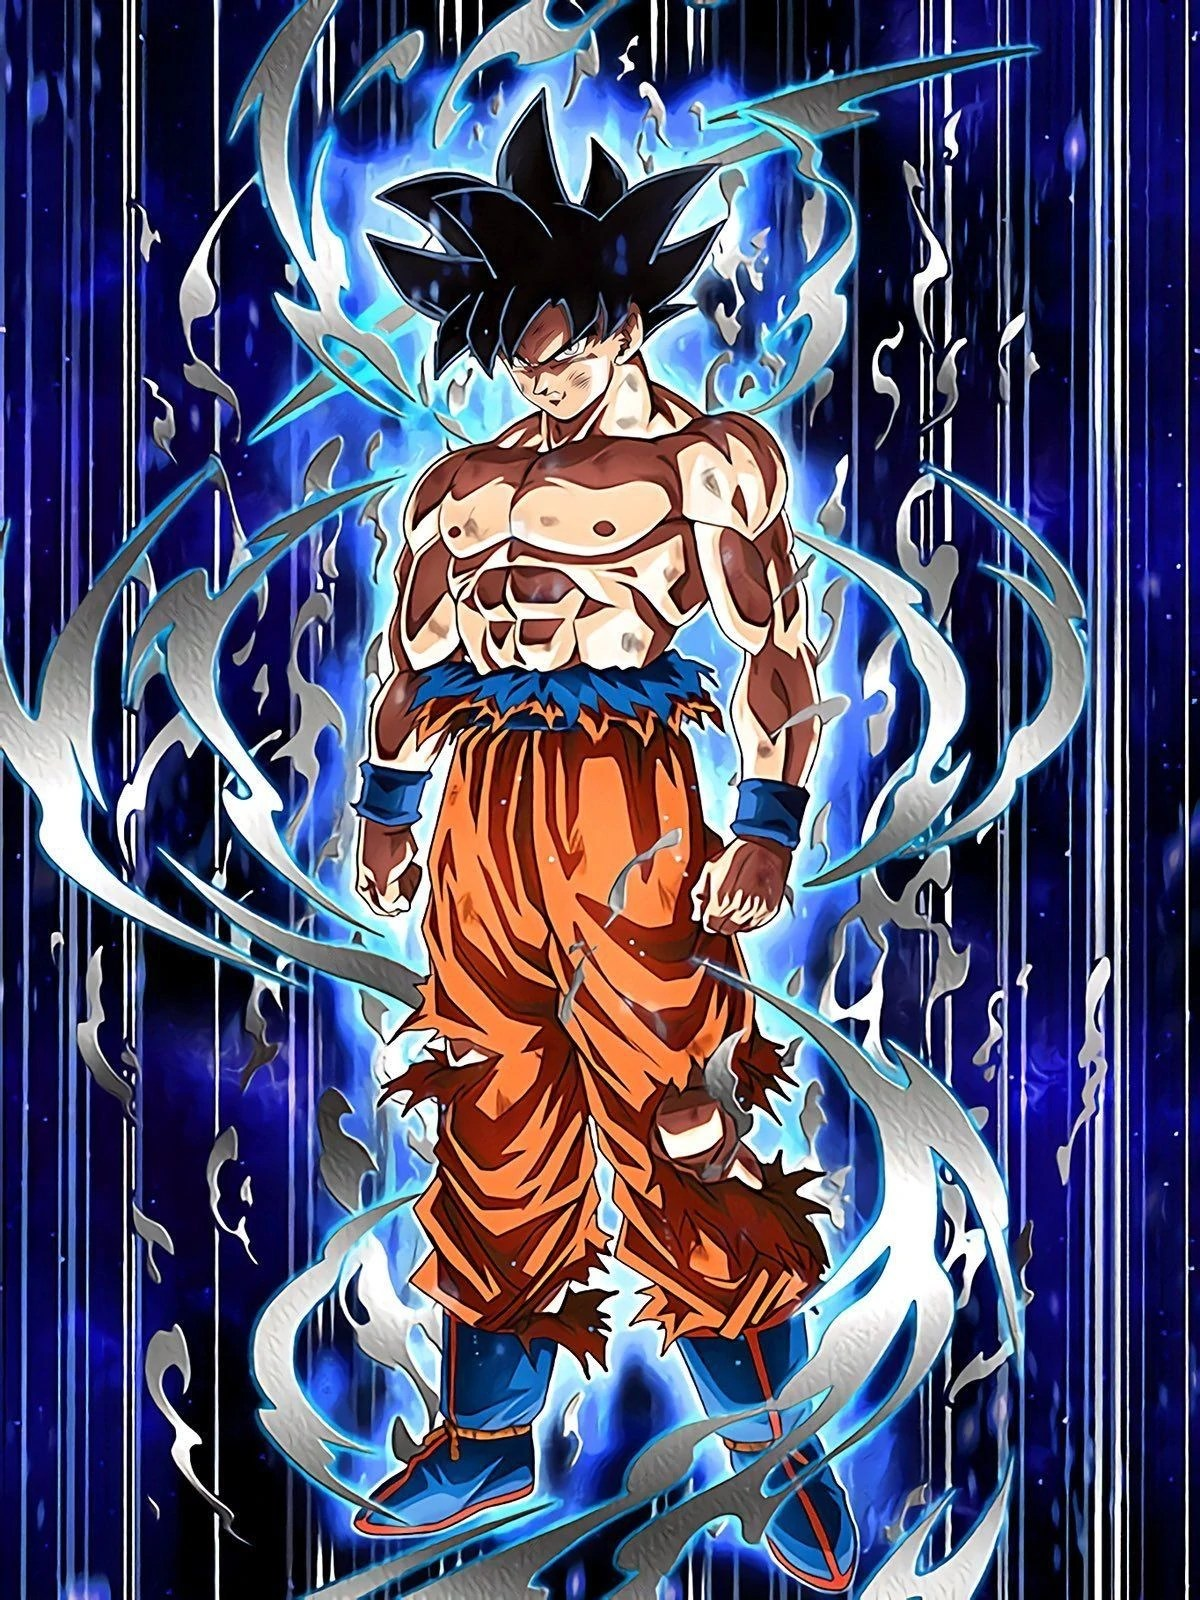 A Surging New Power Goku  Ultra Instinct  Sign     Dragon Ball Z      Realm of Gods  Category Ki  2  and HP  ATK   DEF  120